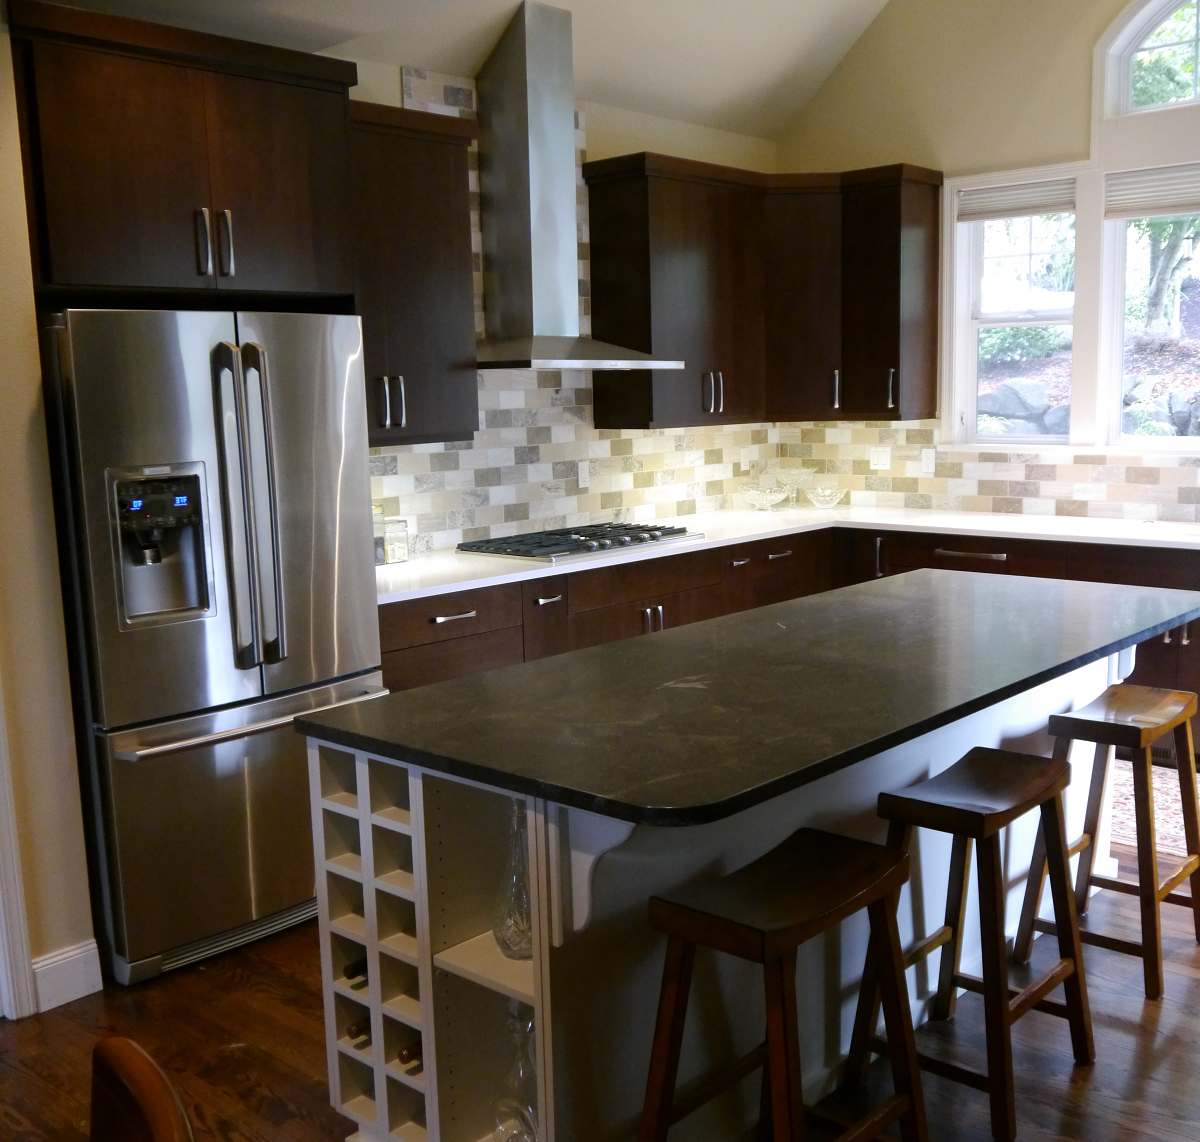 Maple Kitchen Countertops: Sammamish Transitional Kitchen Remodel In Maple